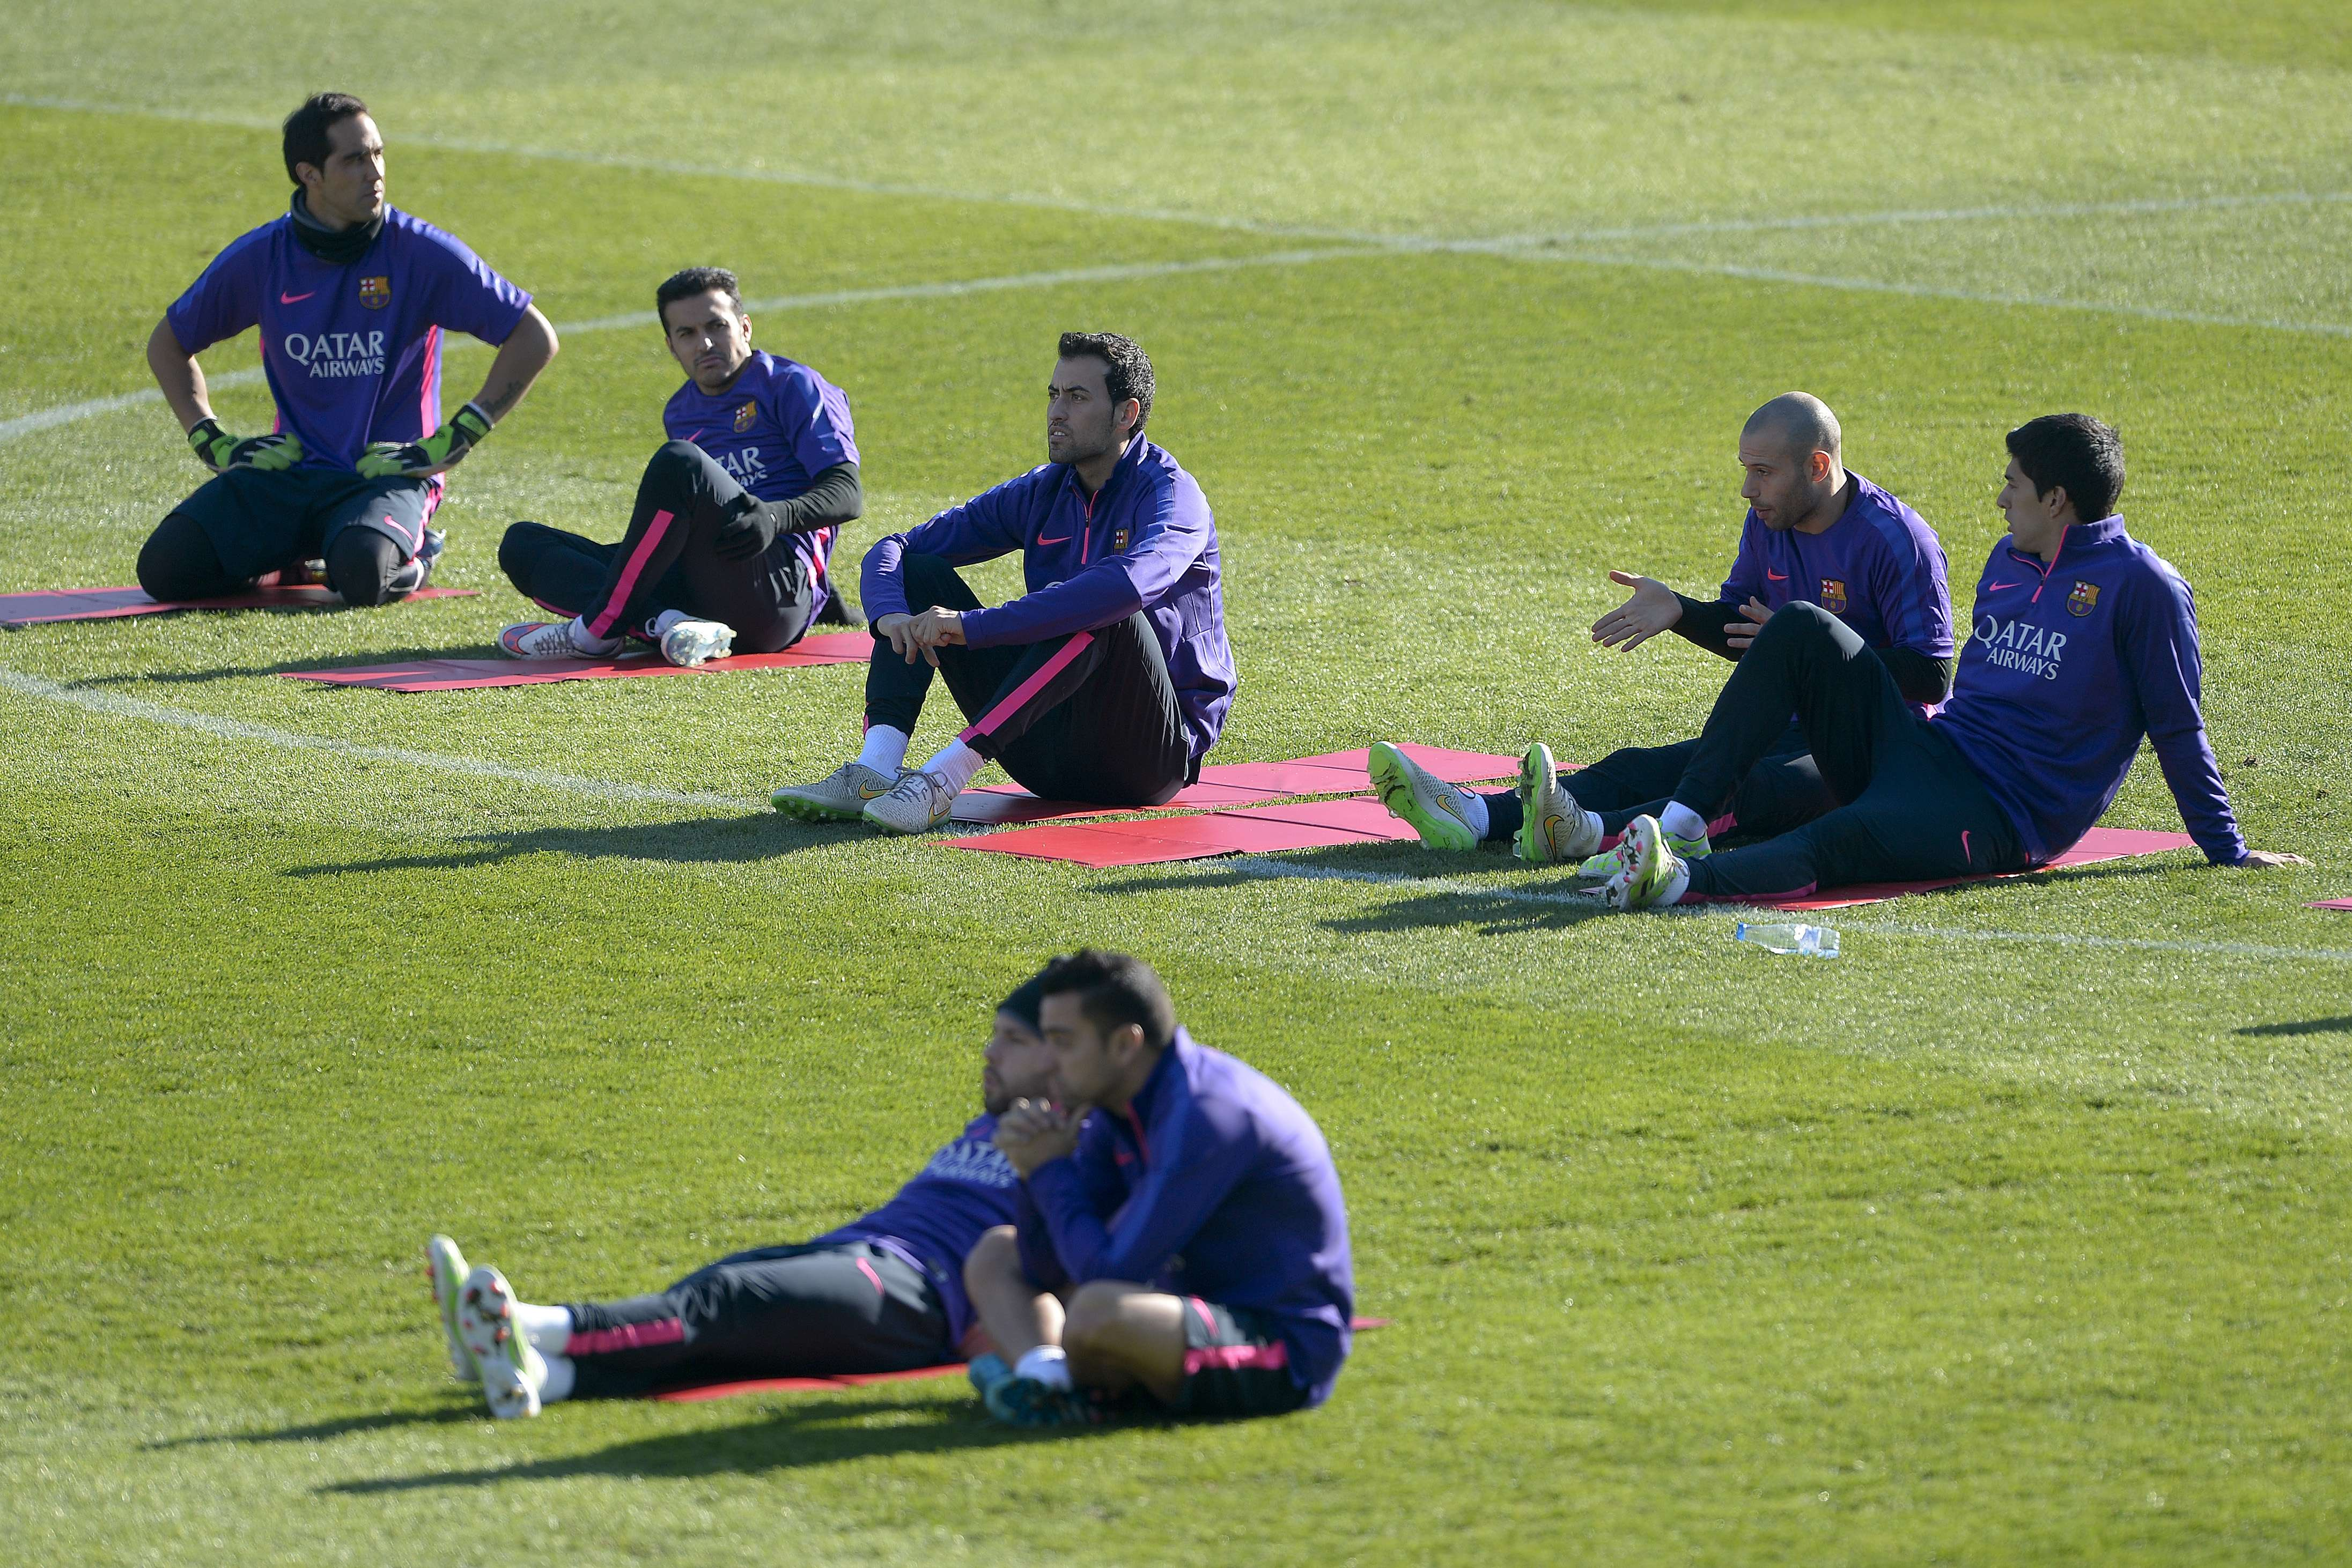 Barcelona's players take part in an open training session at the Mini Stadium in Barcelona on Jan.  5, 2015. (AFP)